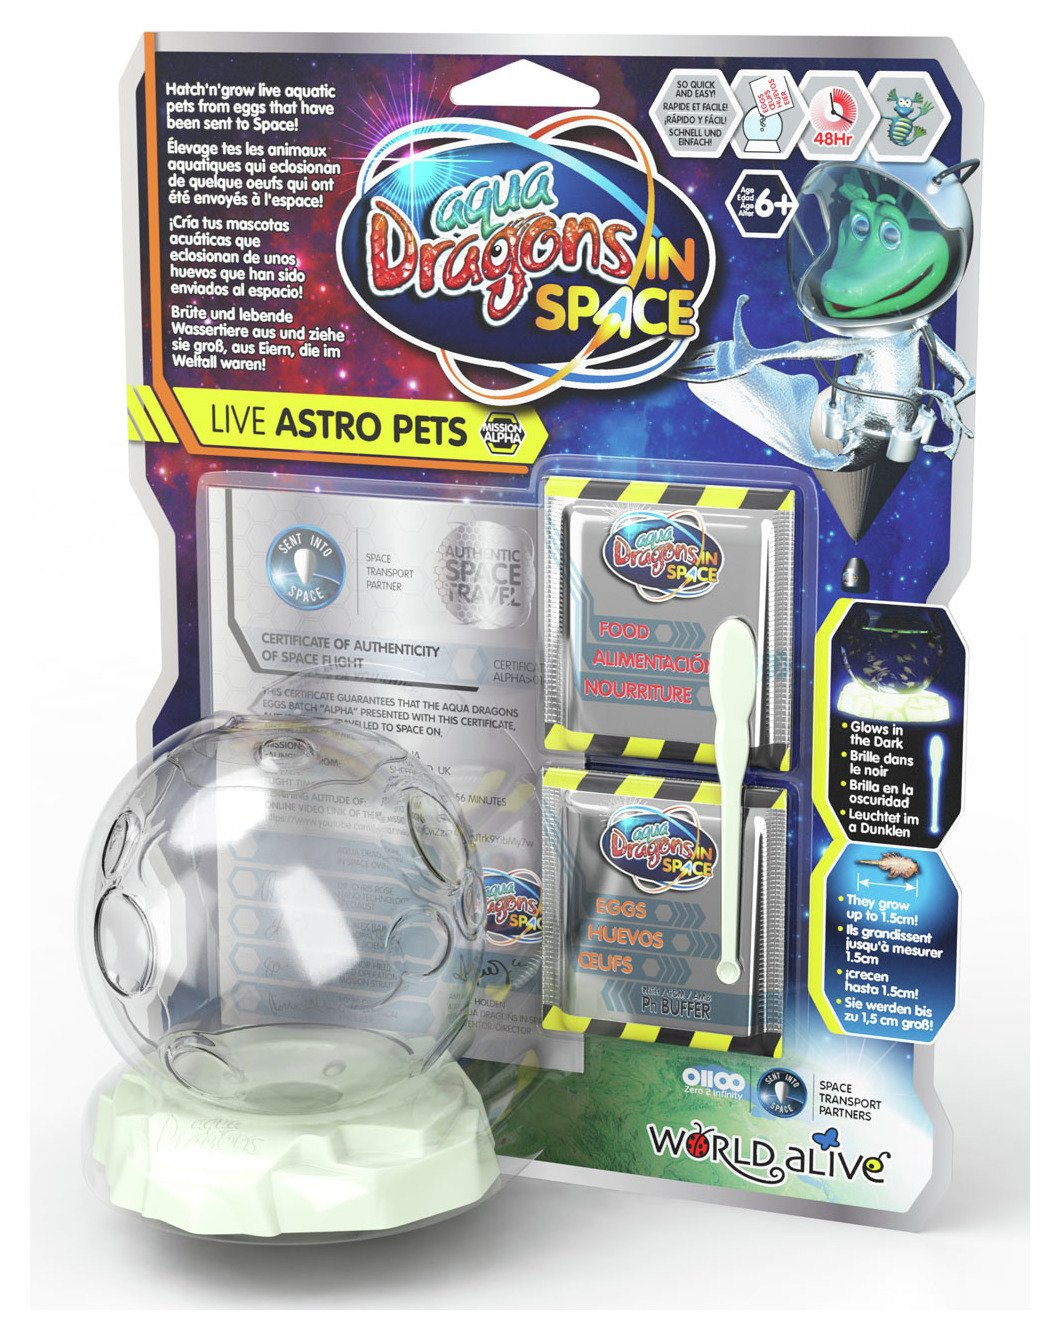 Image of Aqua Dragons Live Astro Pets.